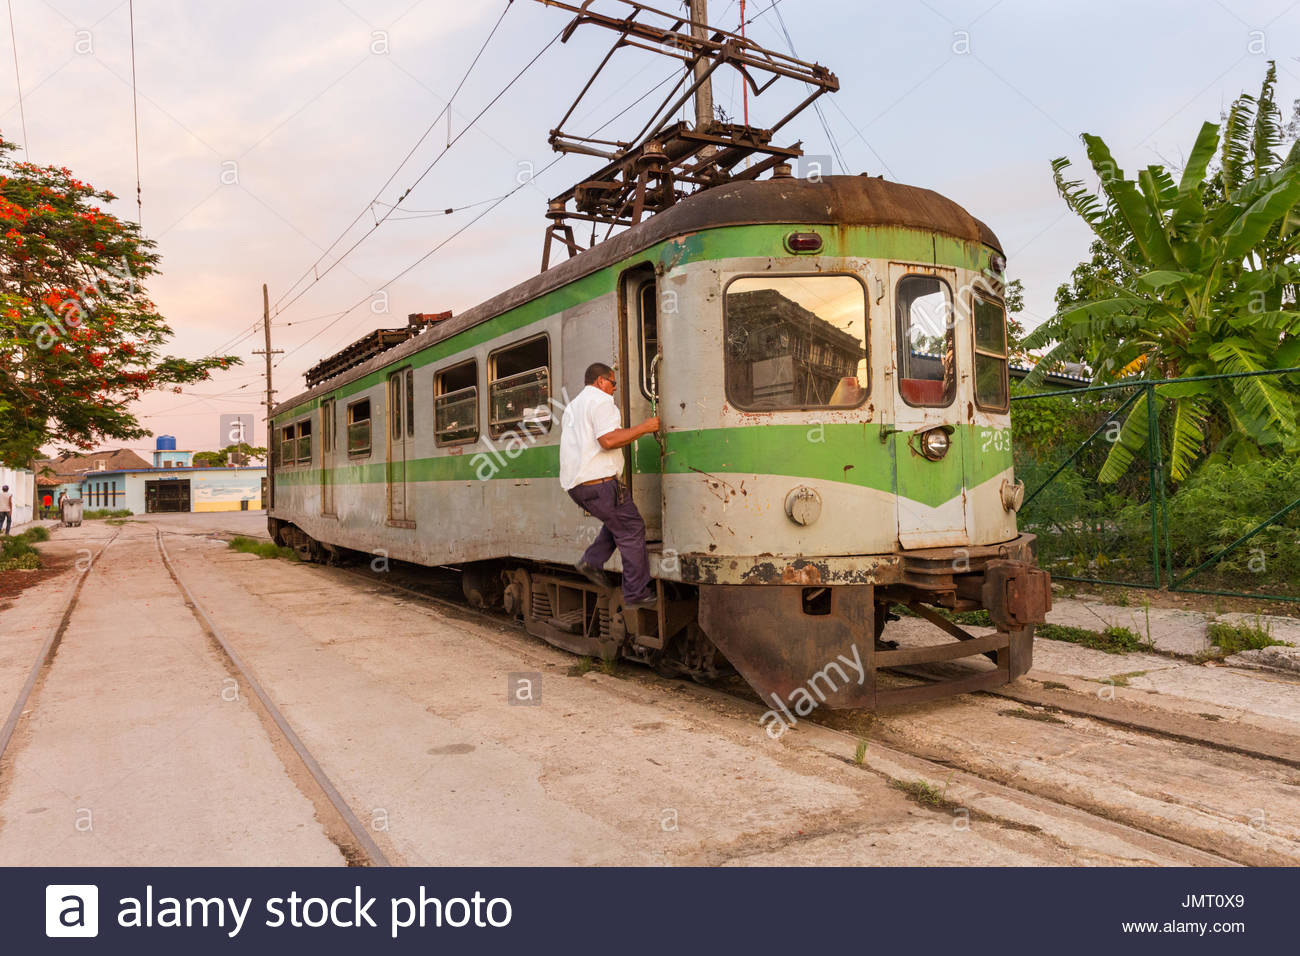 Hershey Railway Western Cuba, Cuba Station Havana Train Stock Photos & Cuba Station Havana Train ...